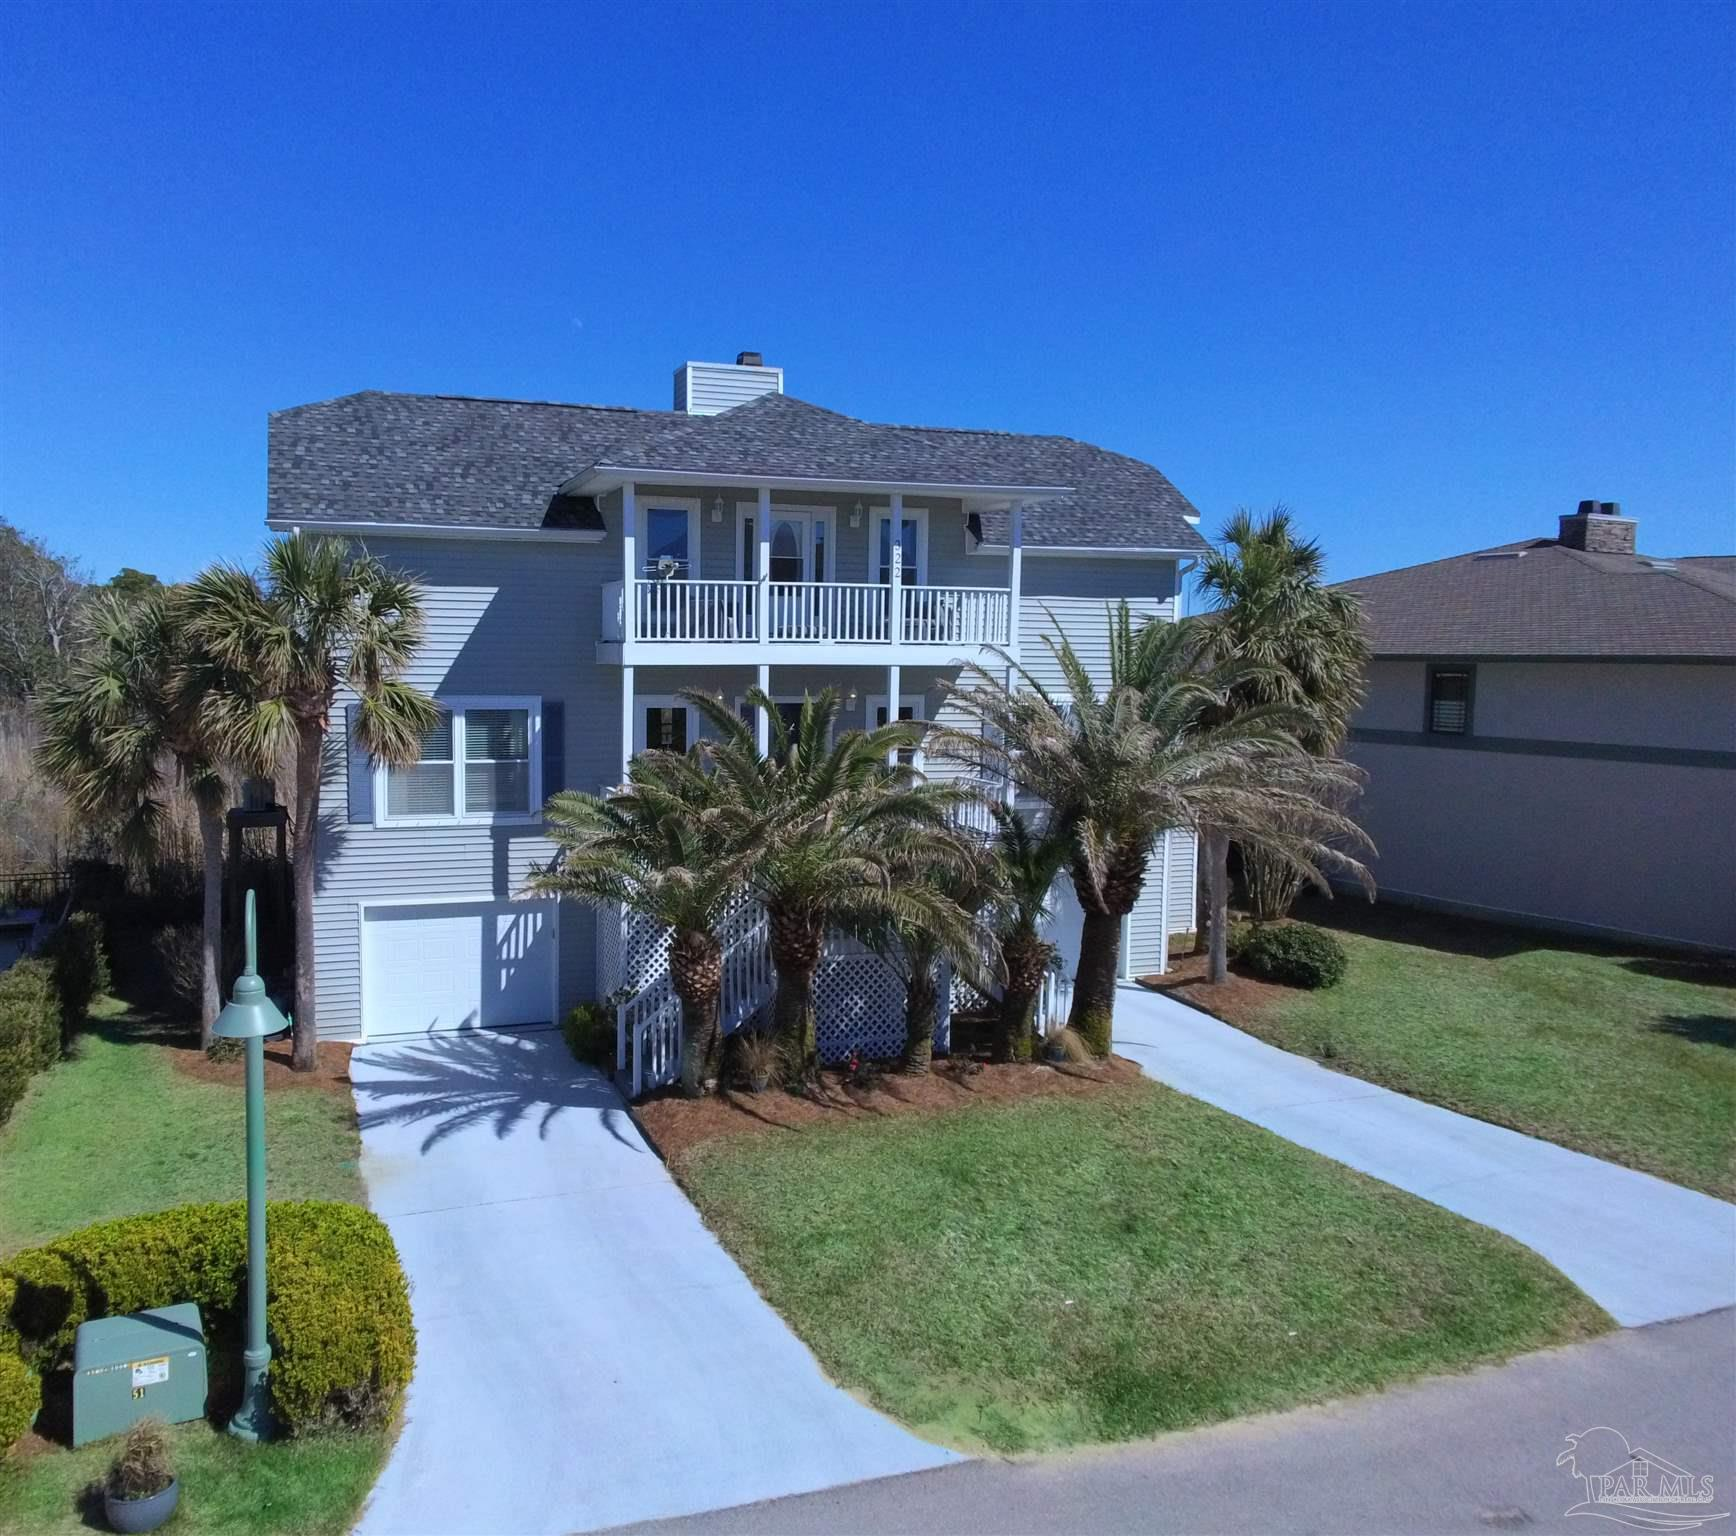 322 DEER POINT DR, Gulf Breeze, Florida 32561, 4 Bedrooms Bedrooms, ,3 BathroomsBathrooms,Single Family,For Sale,322 DEER POINT DR,3,583829